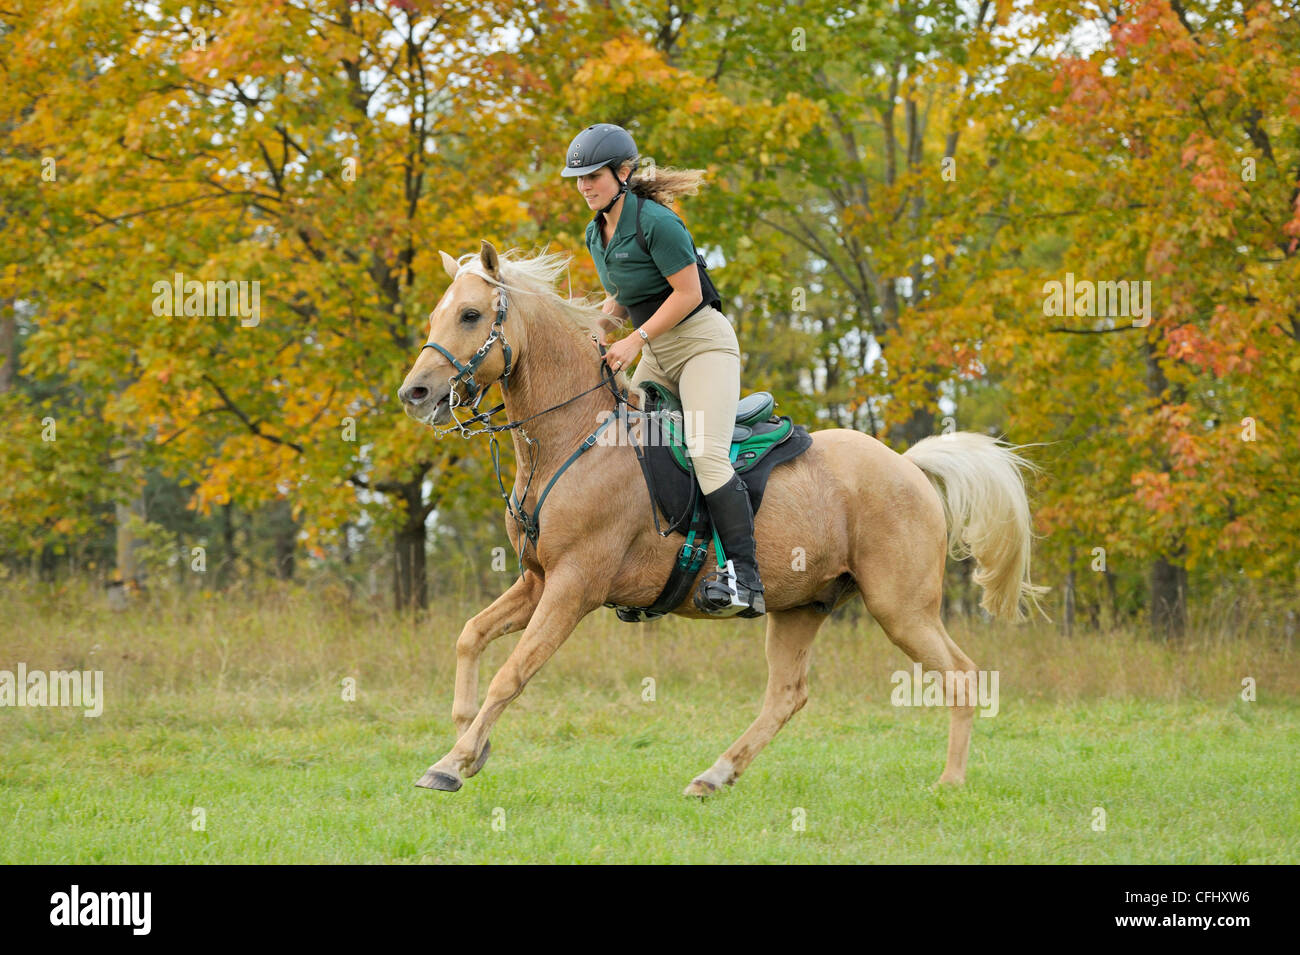 Rider wearing a back protector galloping on a heavy sweating palomino thoroughbred horse (endurance riding) - Stock Image